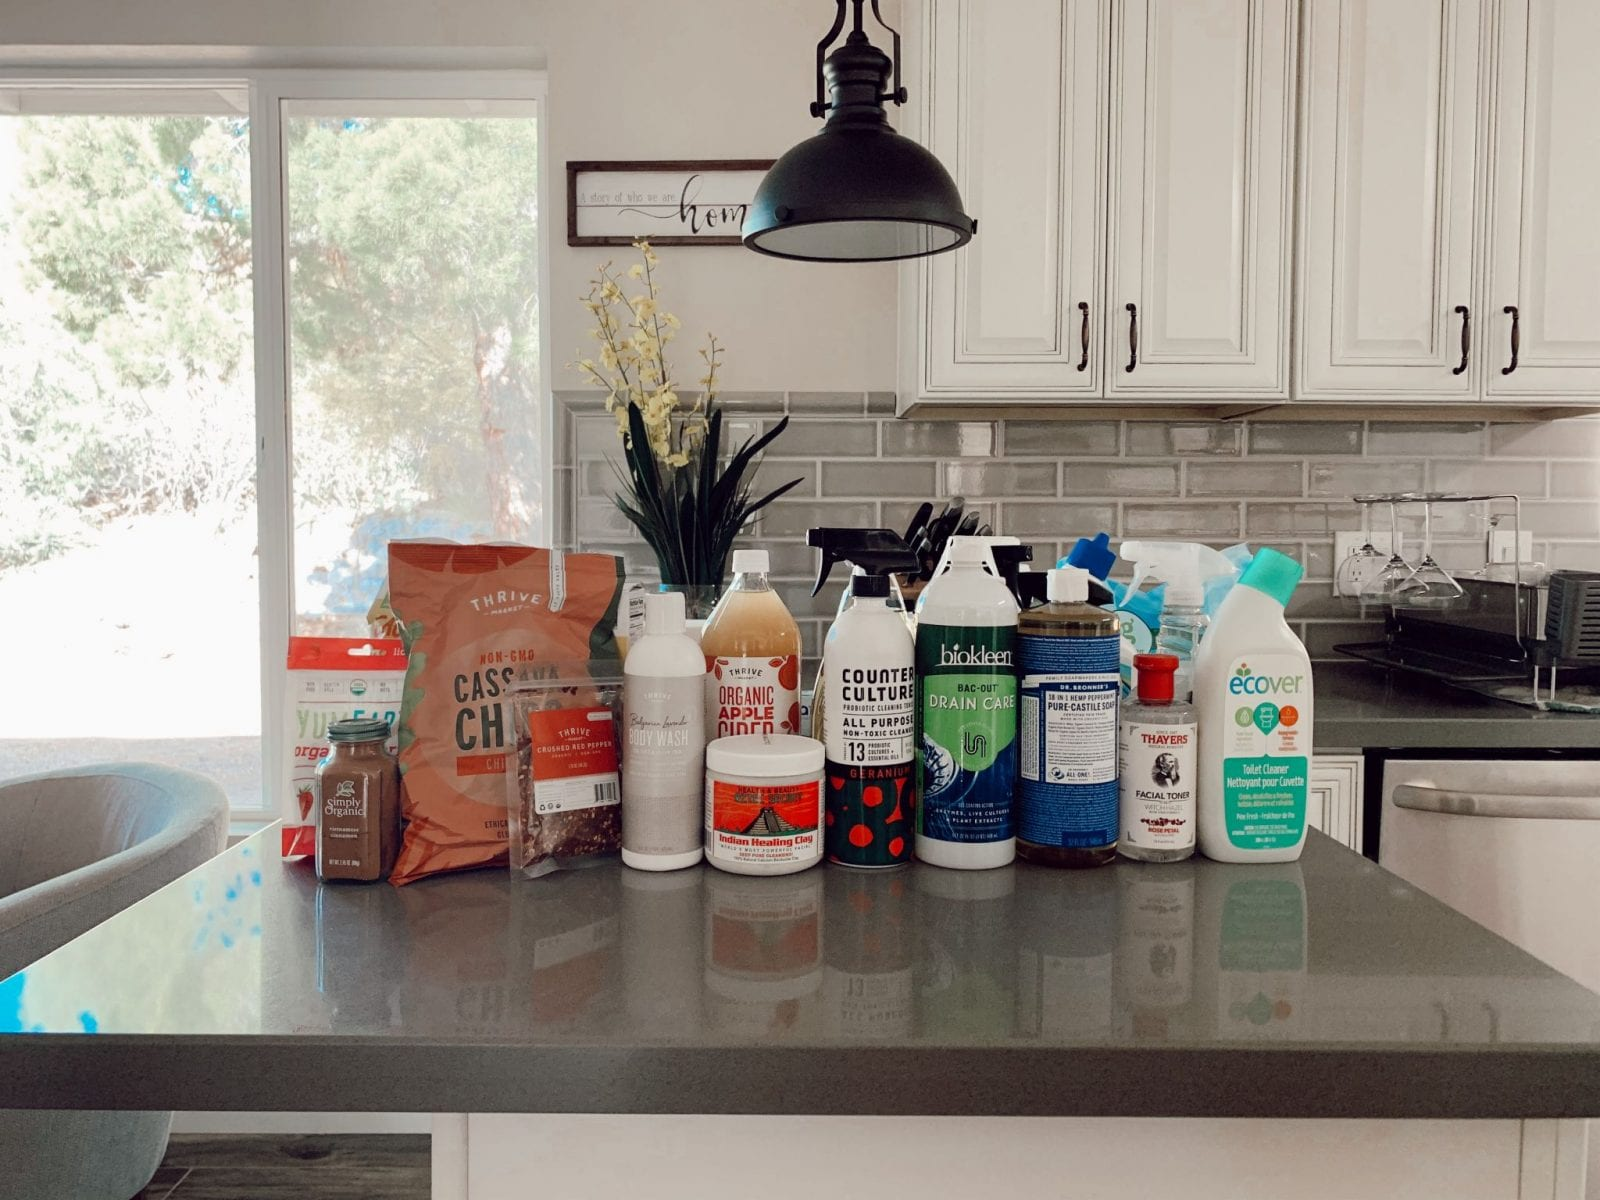 This is a complete photo of my Thrive Market spring order, including lots of household cleaning products.